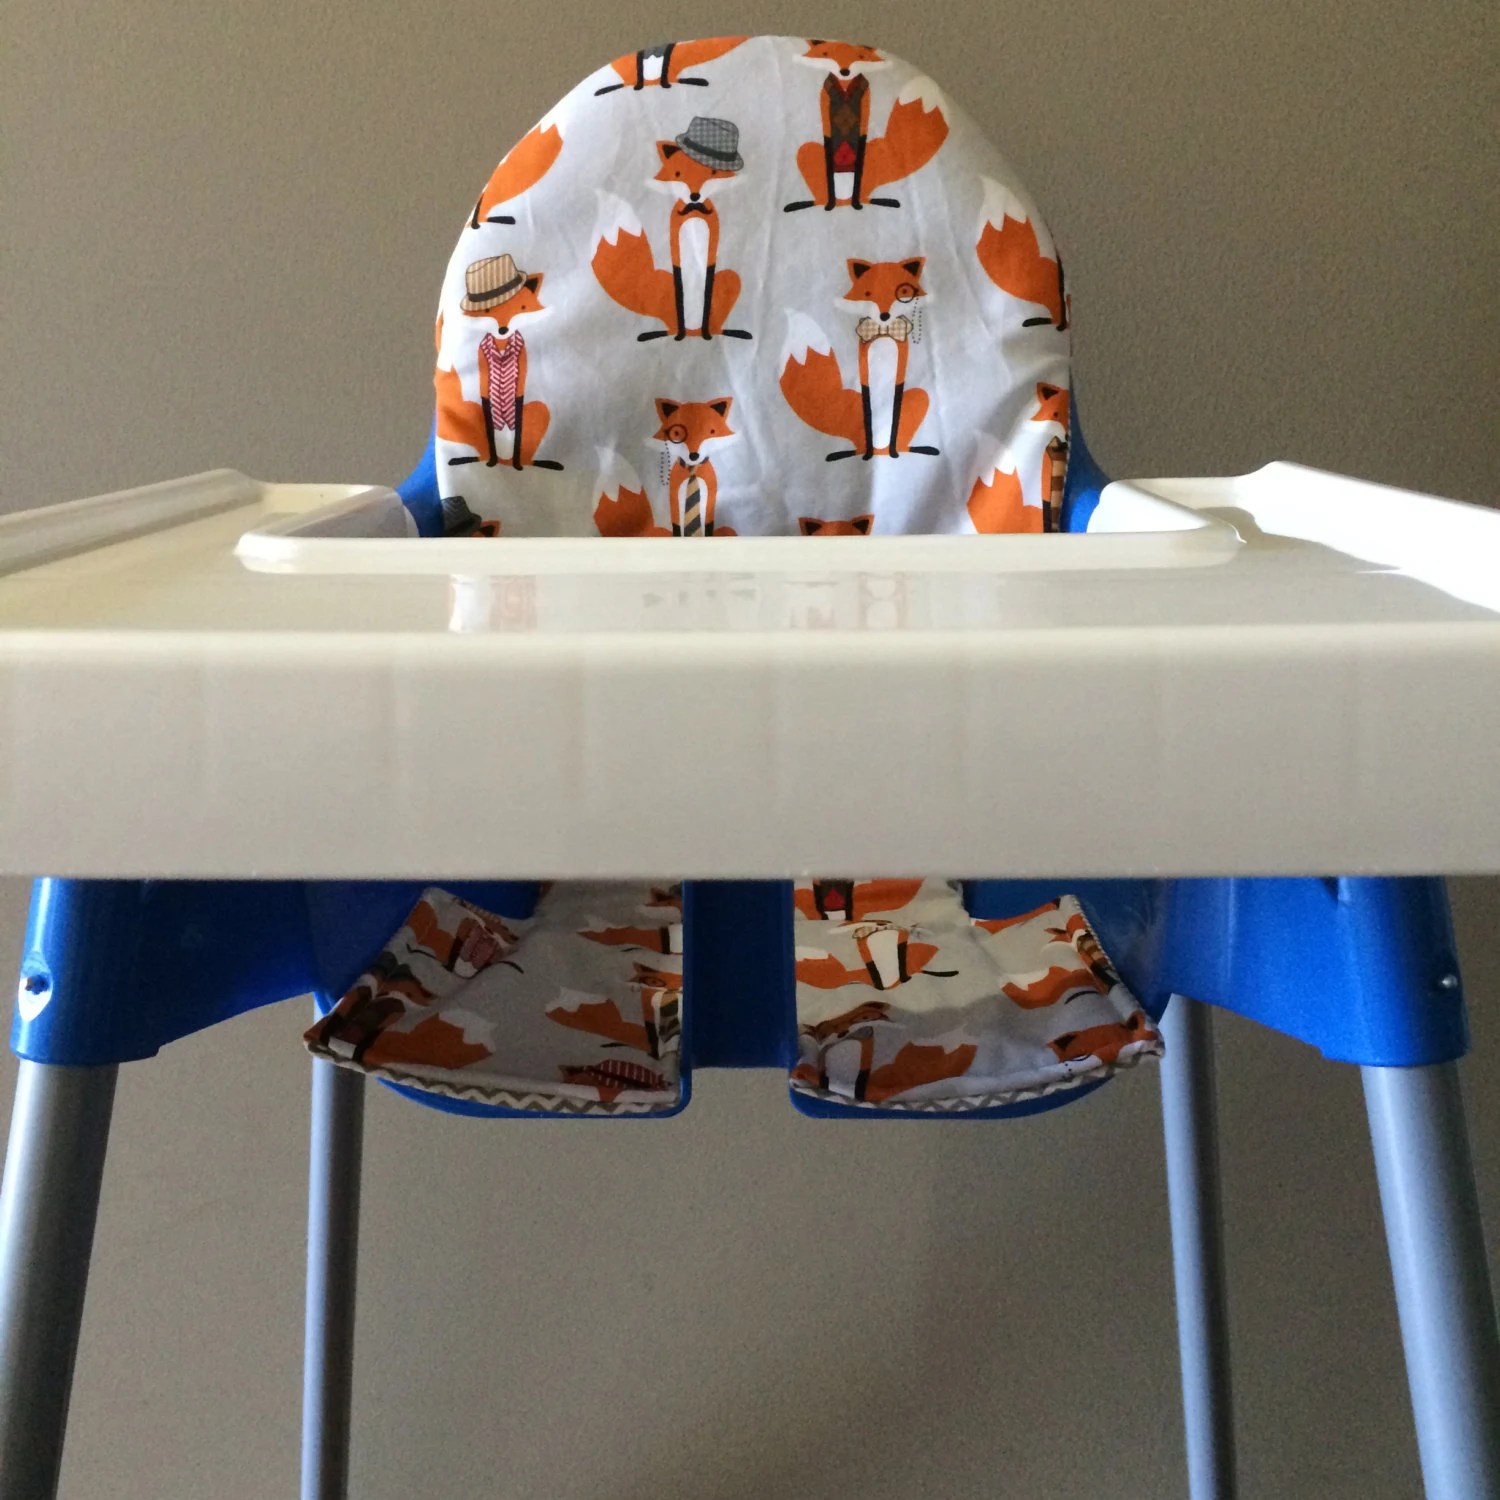 antilop high chair office york ikea cover cotton orange foxes and grey